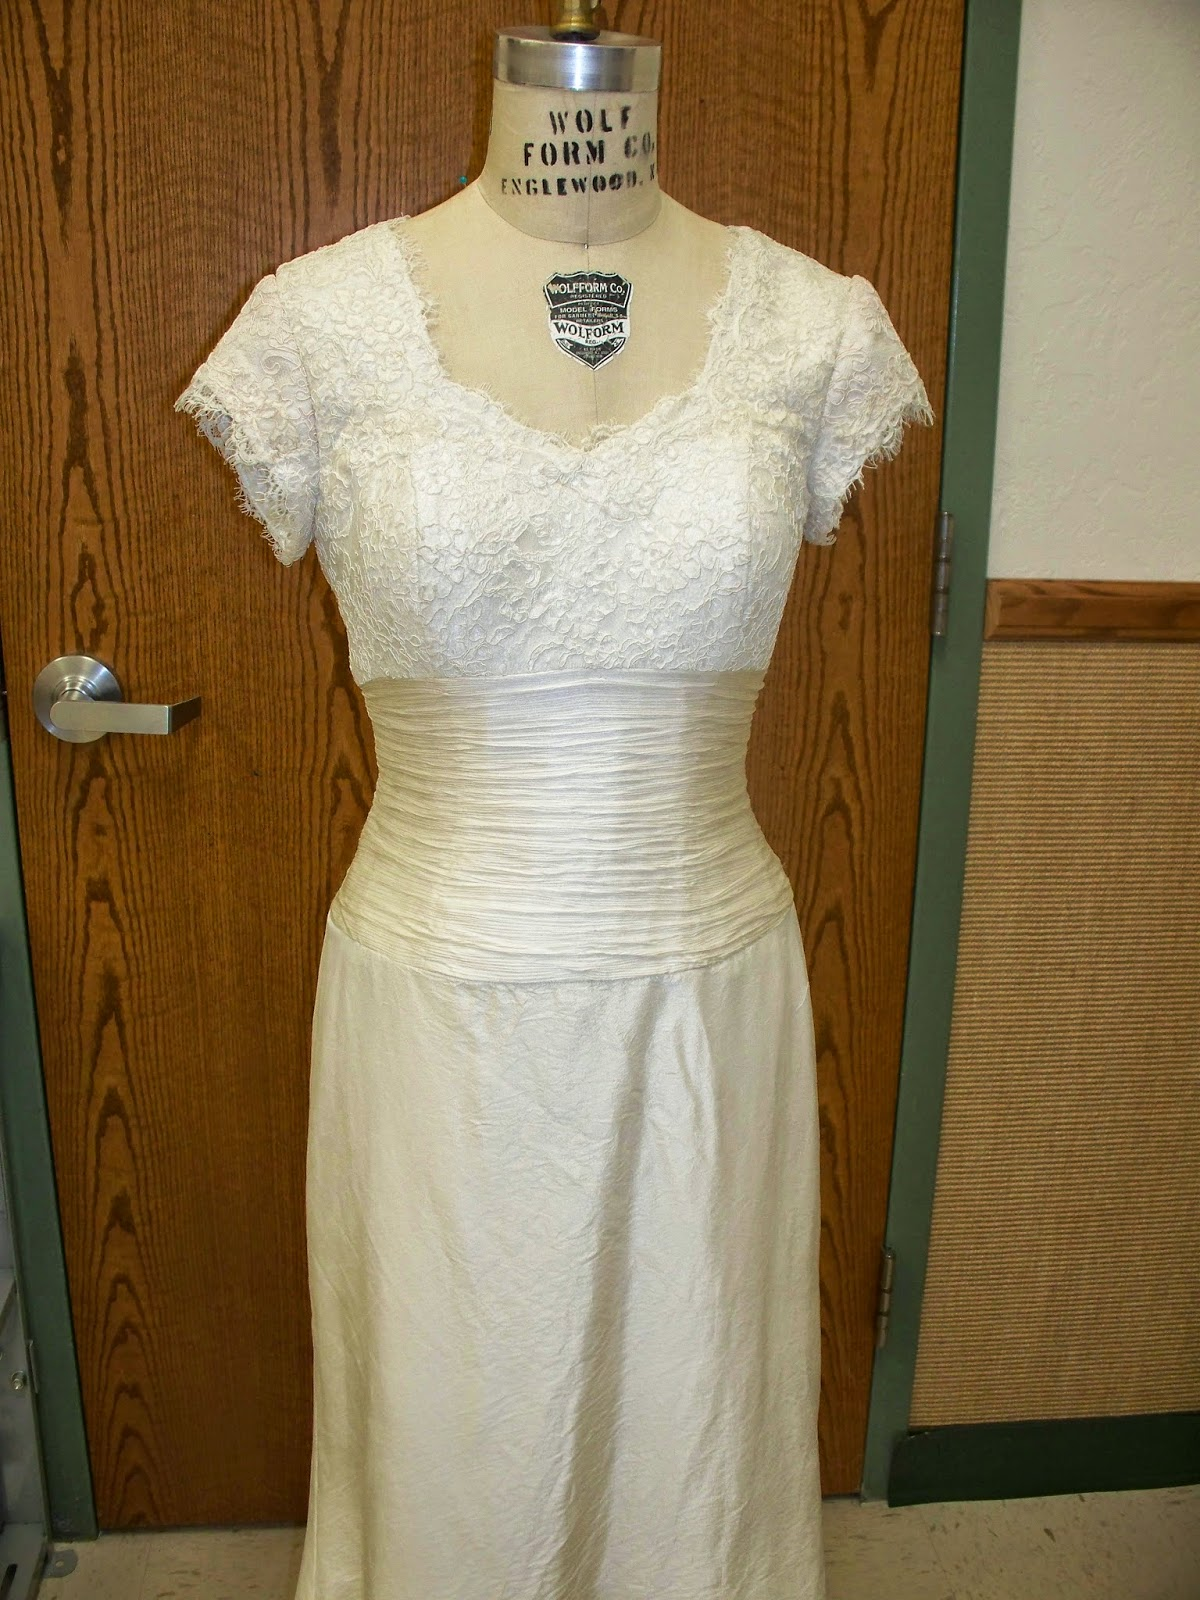 sewcreatelive: How to Add Lace Sleeves and Shoulders to a Strapless ...